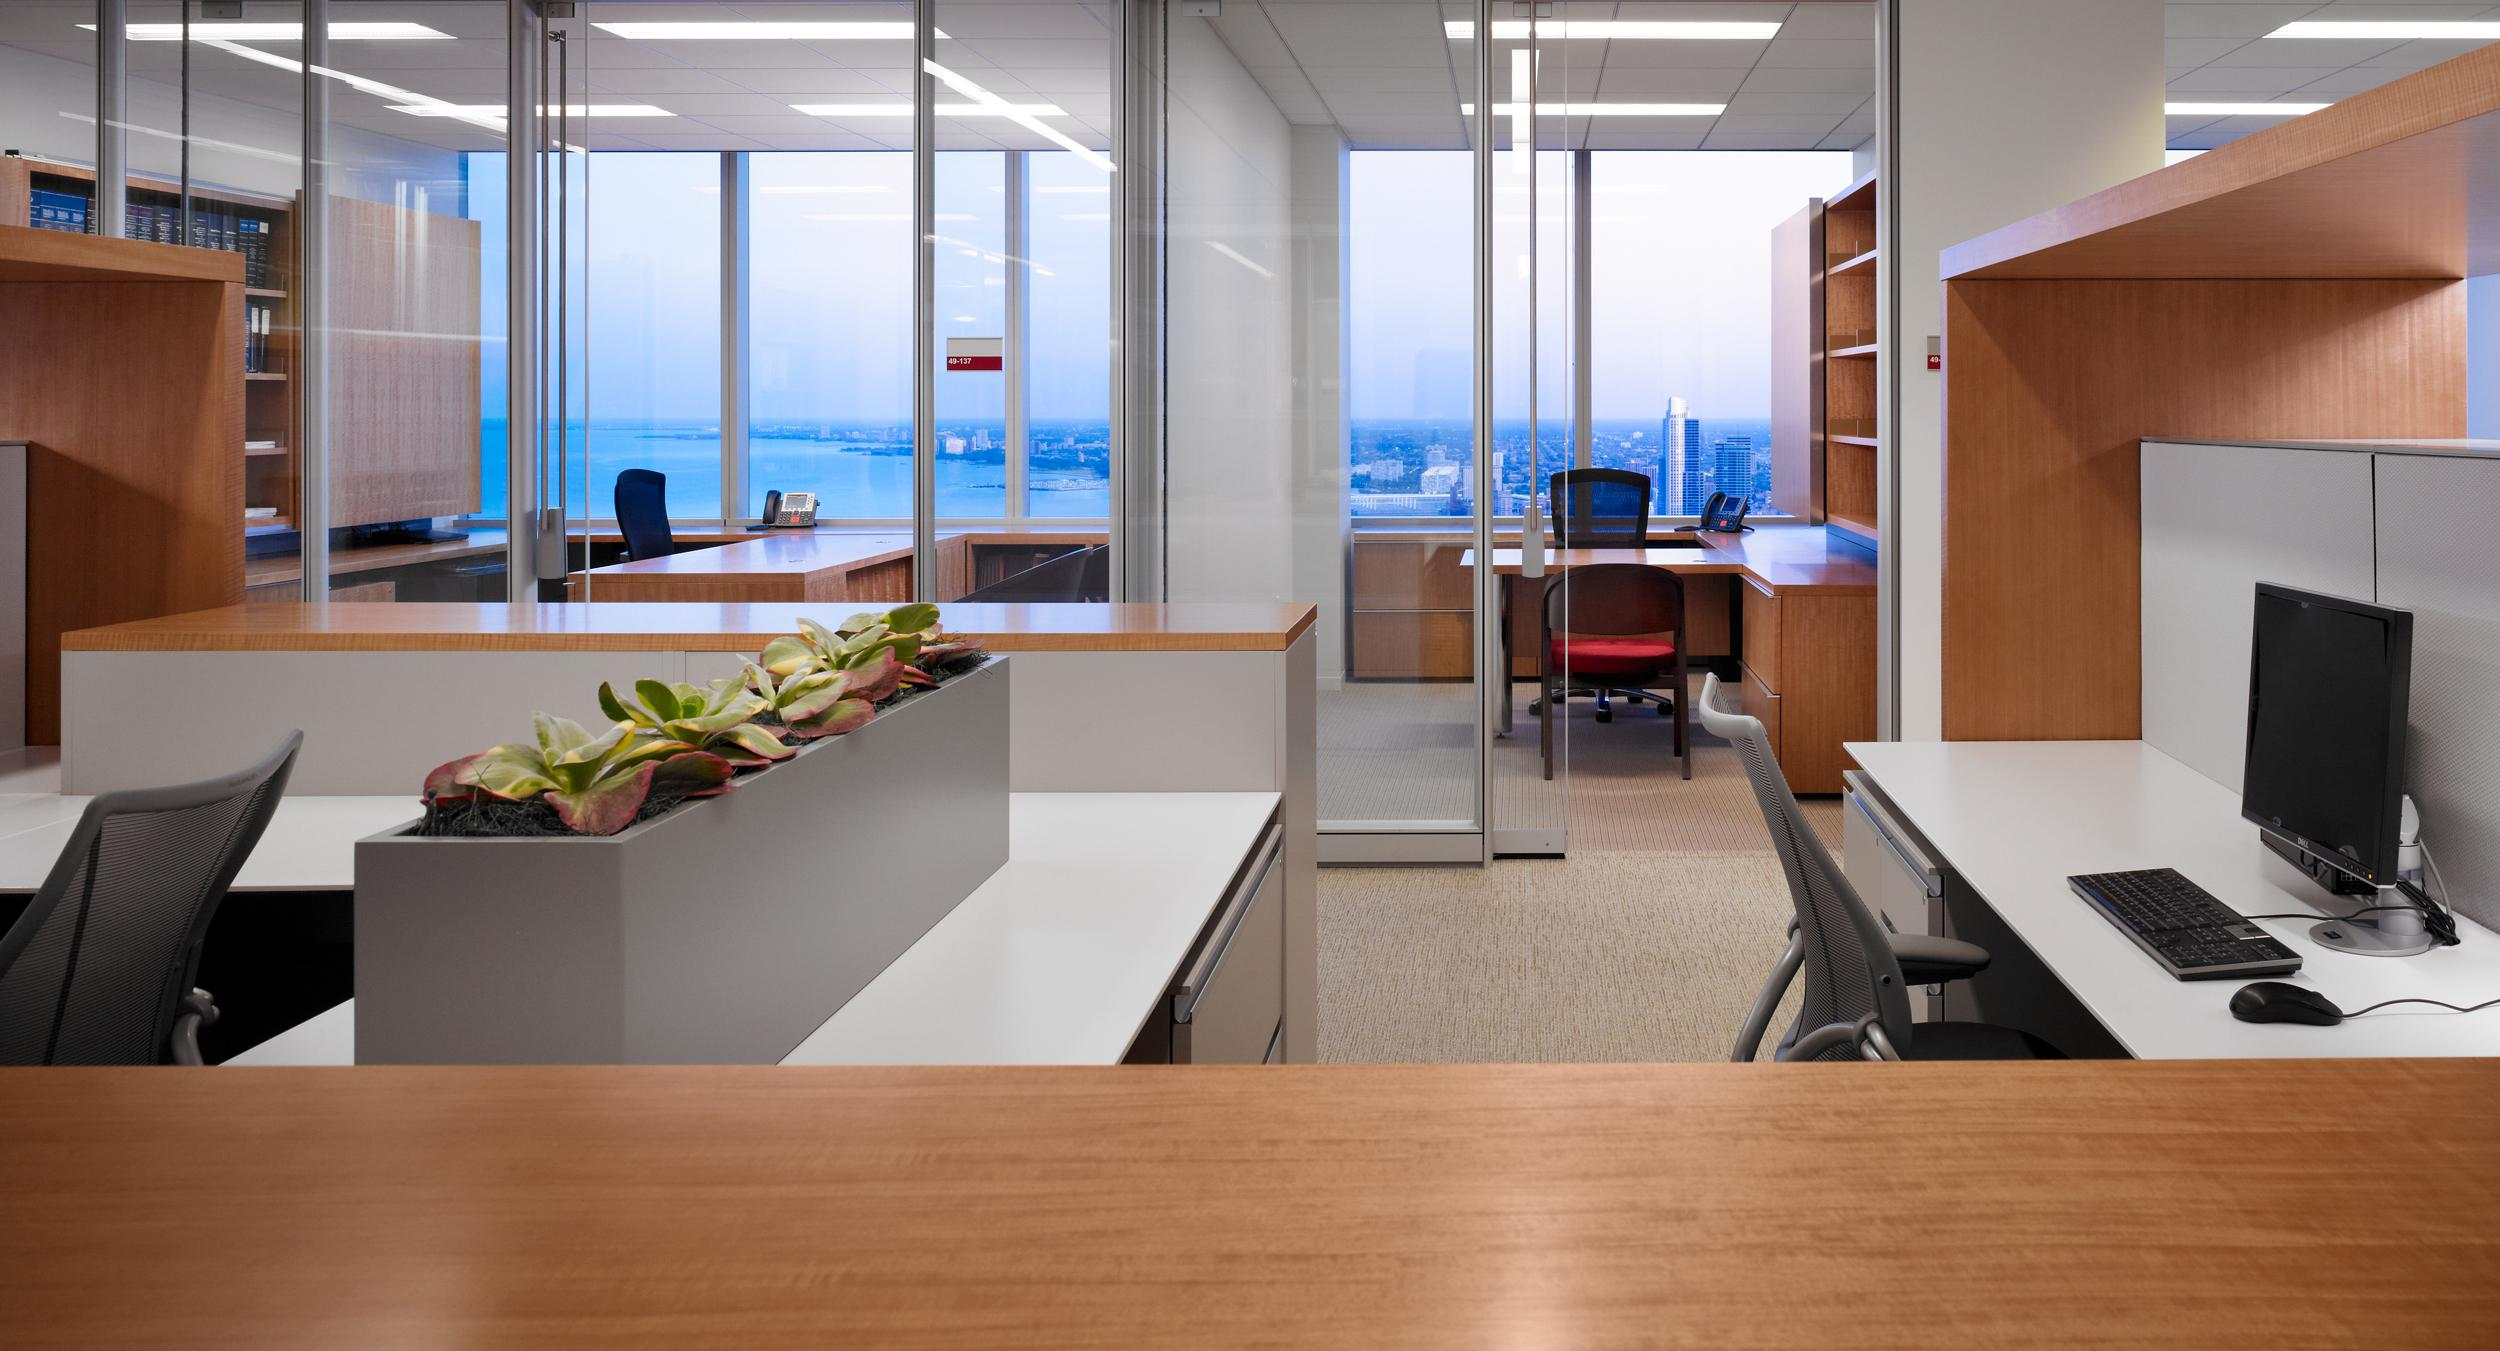 HALCON provided Anigre surfaces and surrounds for the open plan to complement private offices.